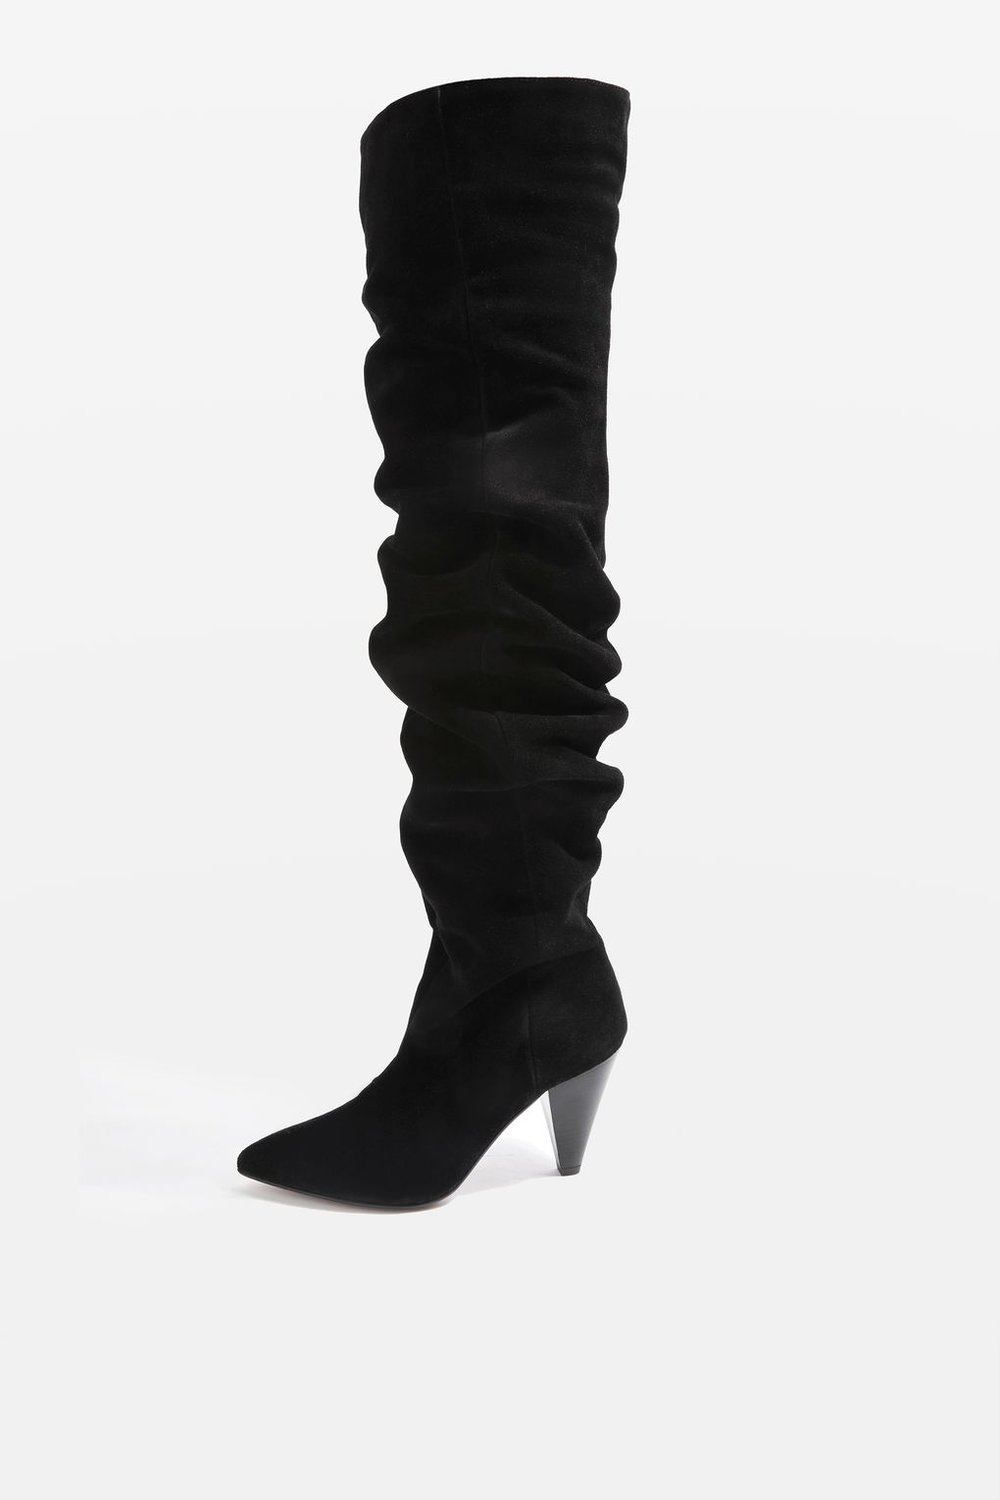 BOXER High Leg Boots. Available in three colors. Topshop. $190.